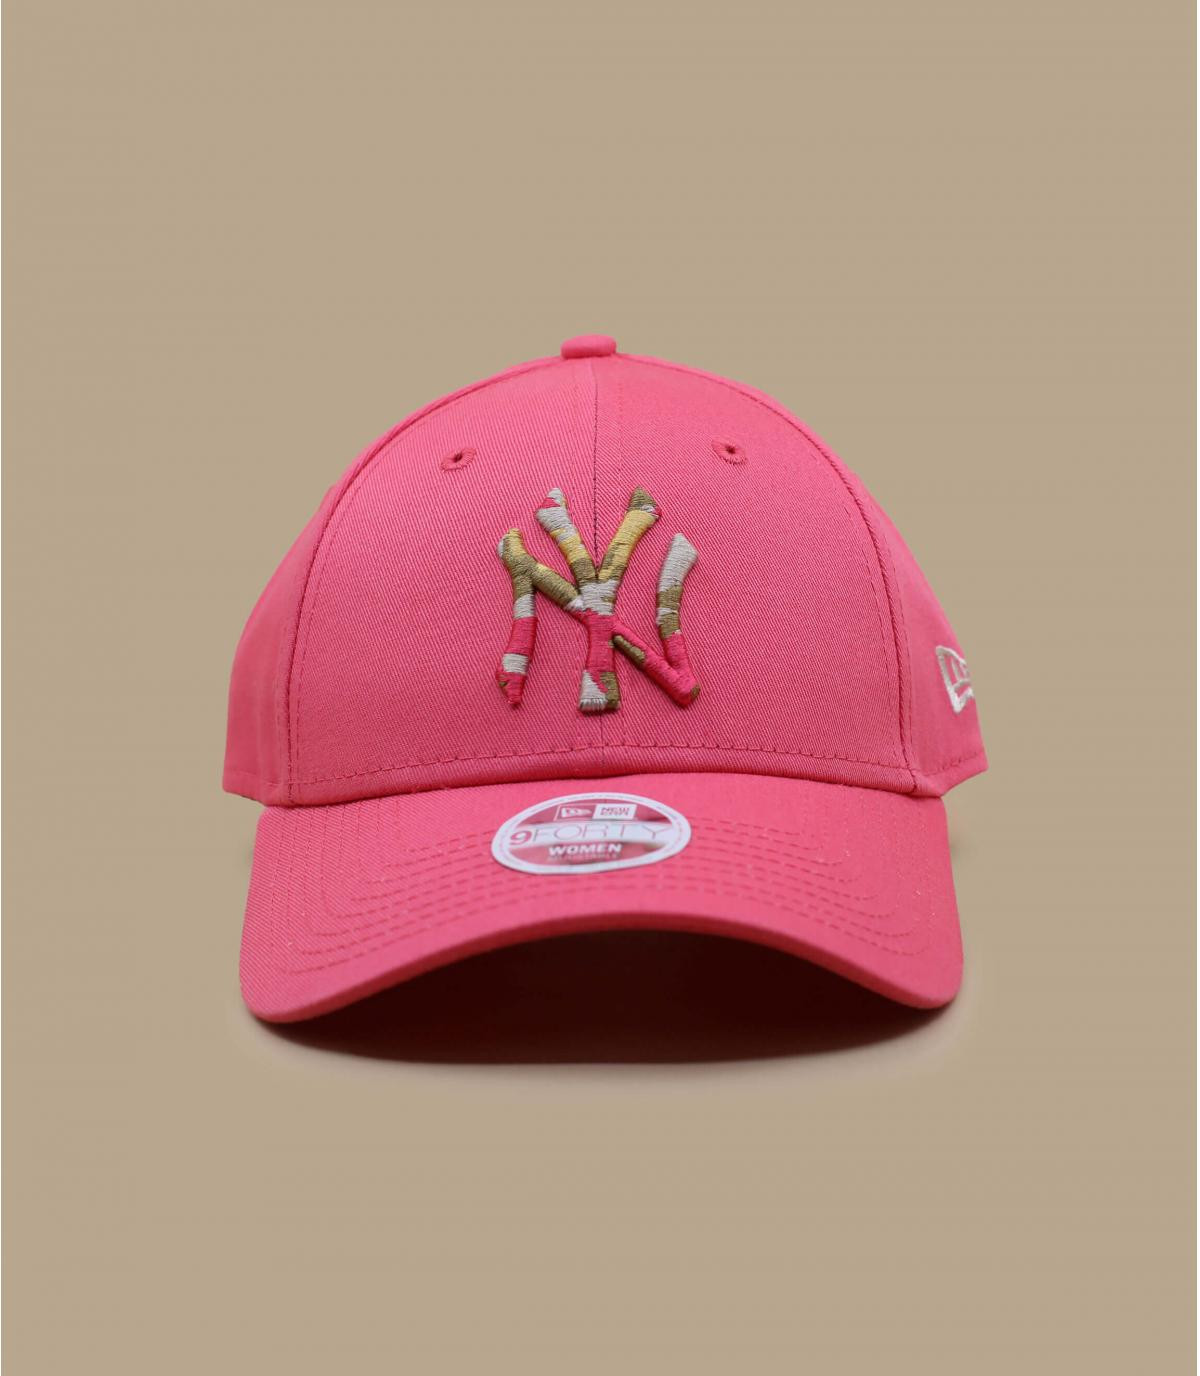 Détails Casquette Wmn Camo Infill NY 940 pink - image 2